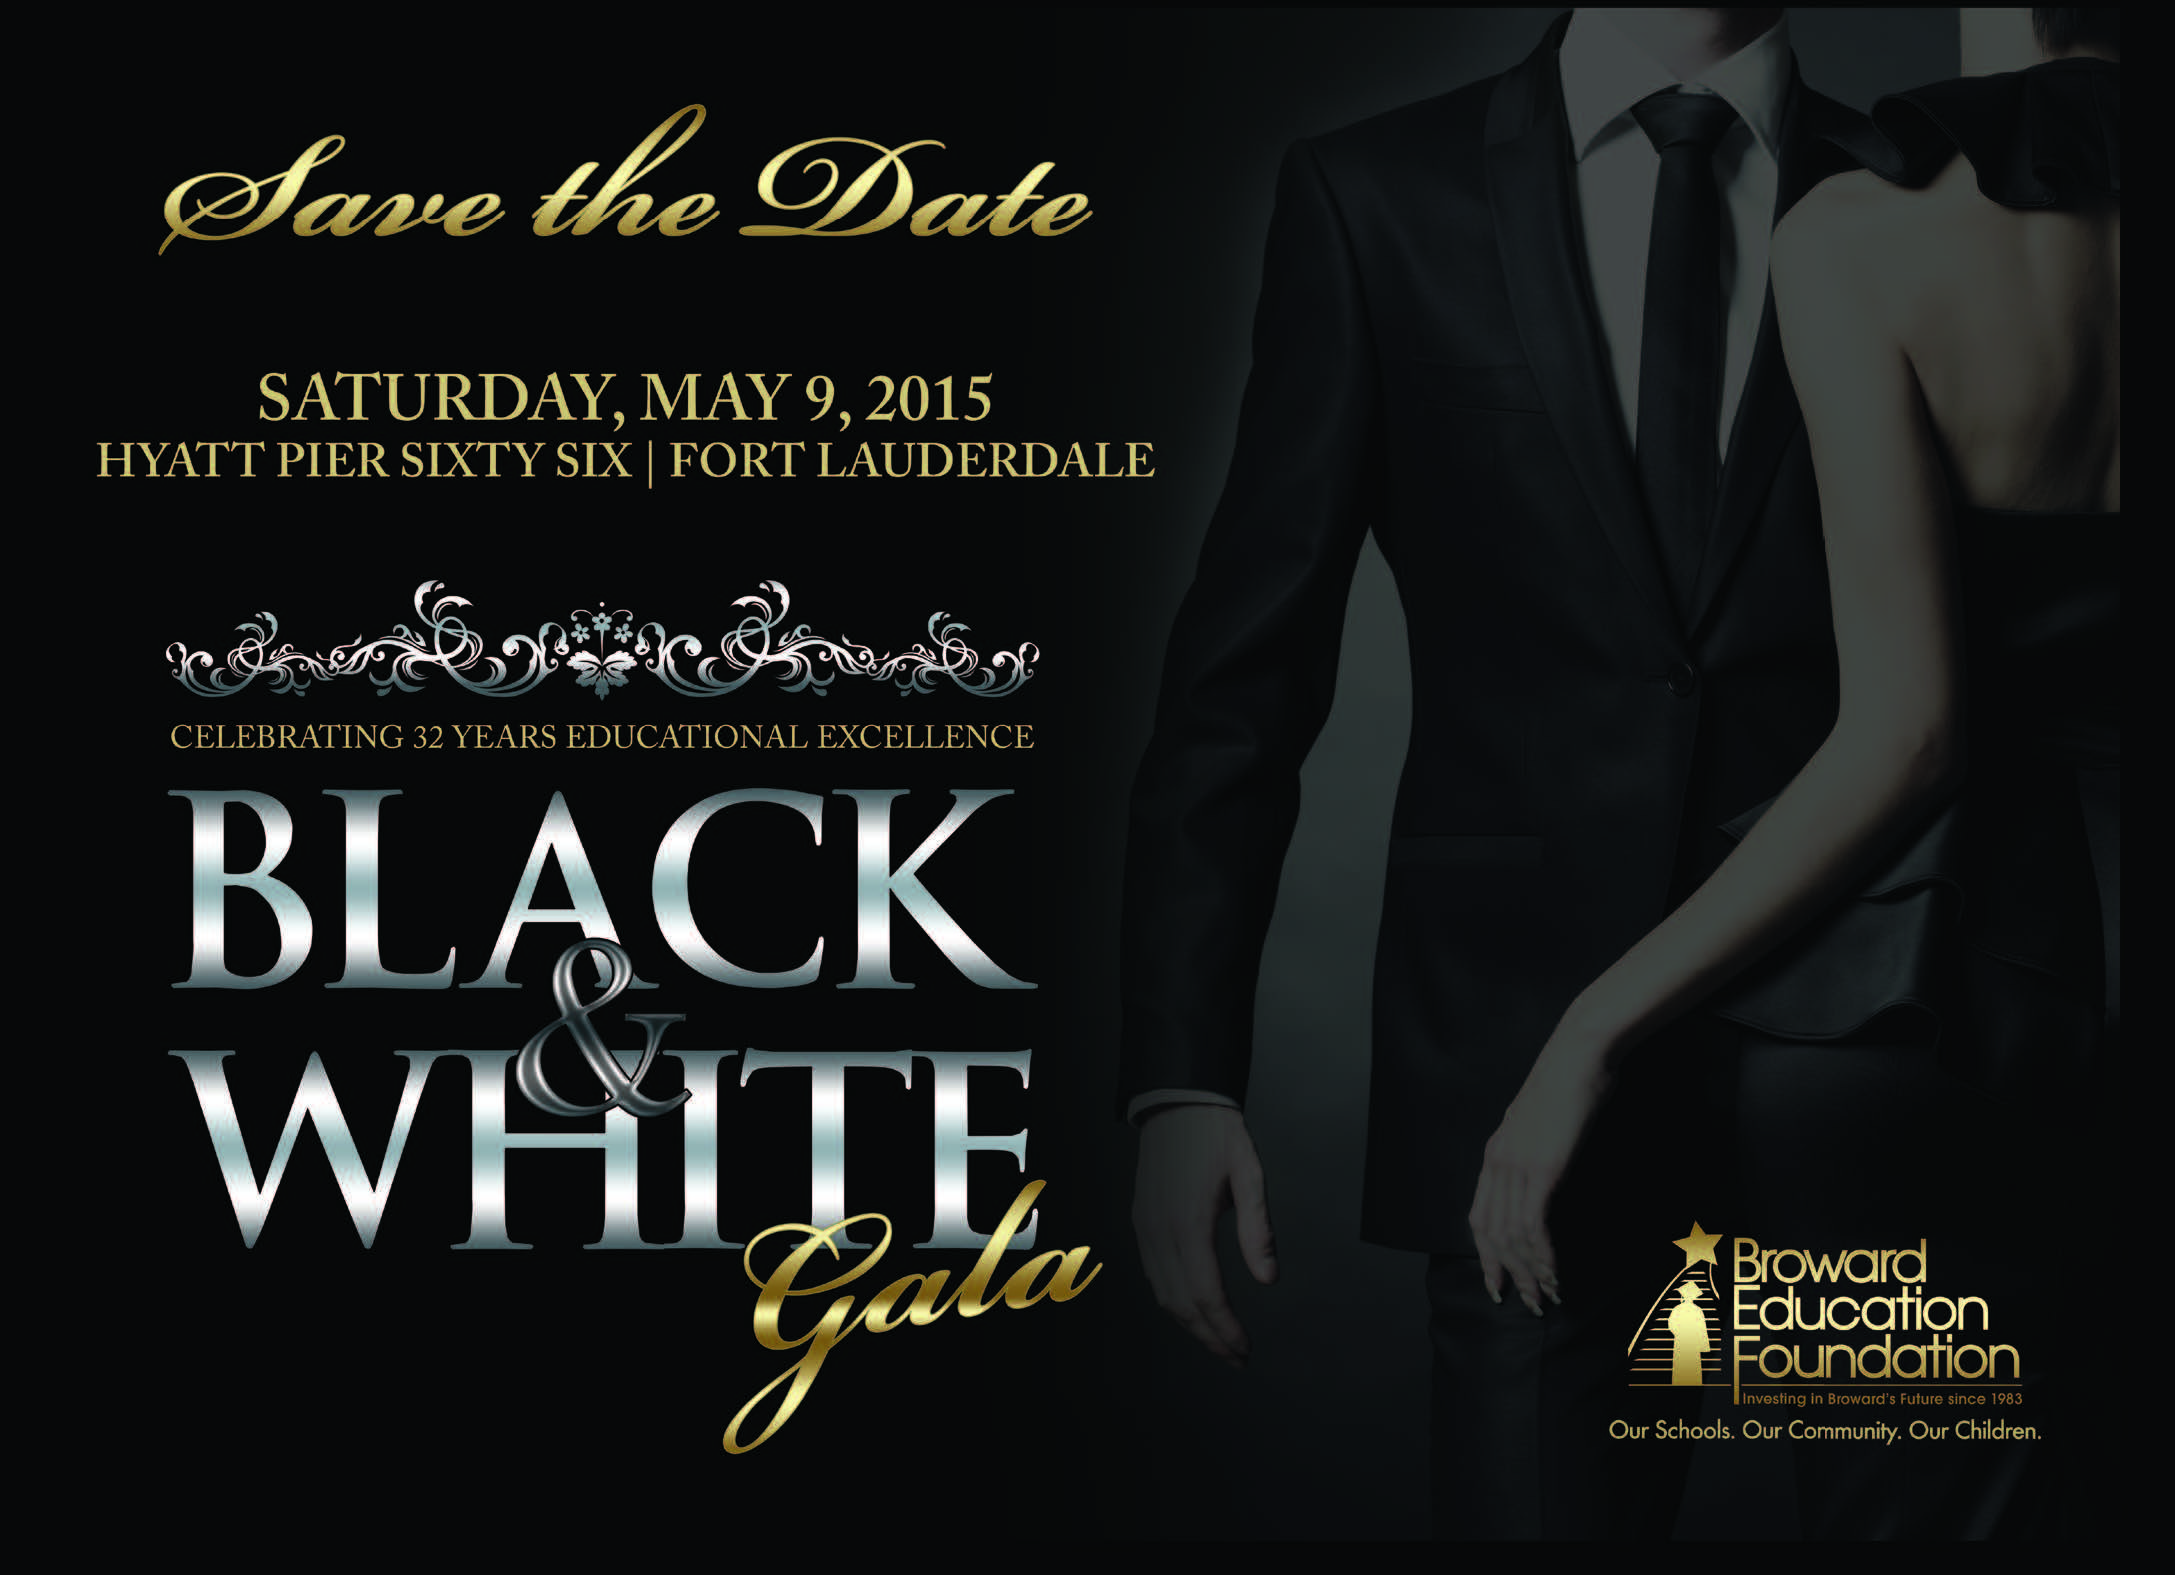 Celebrate The Night In Black White Education Foundation